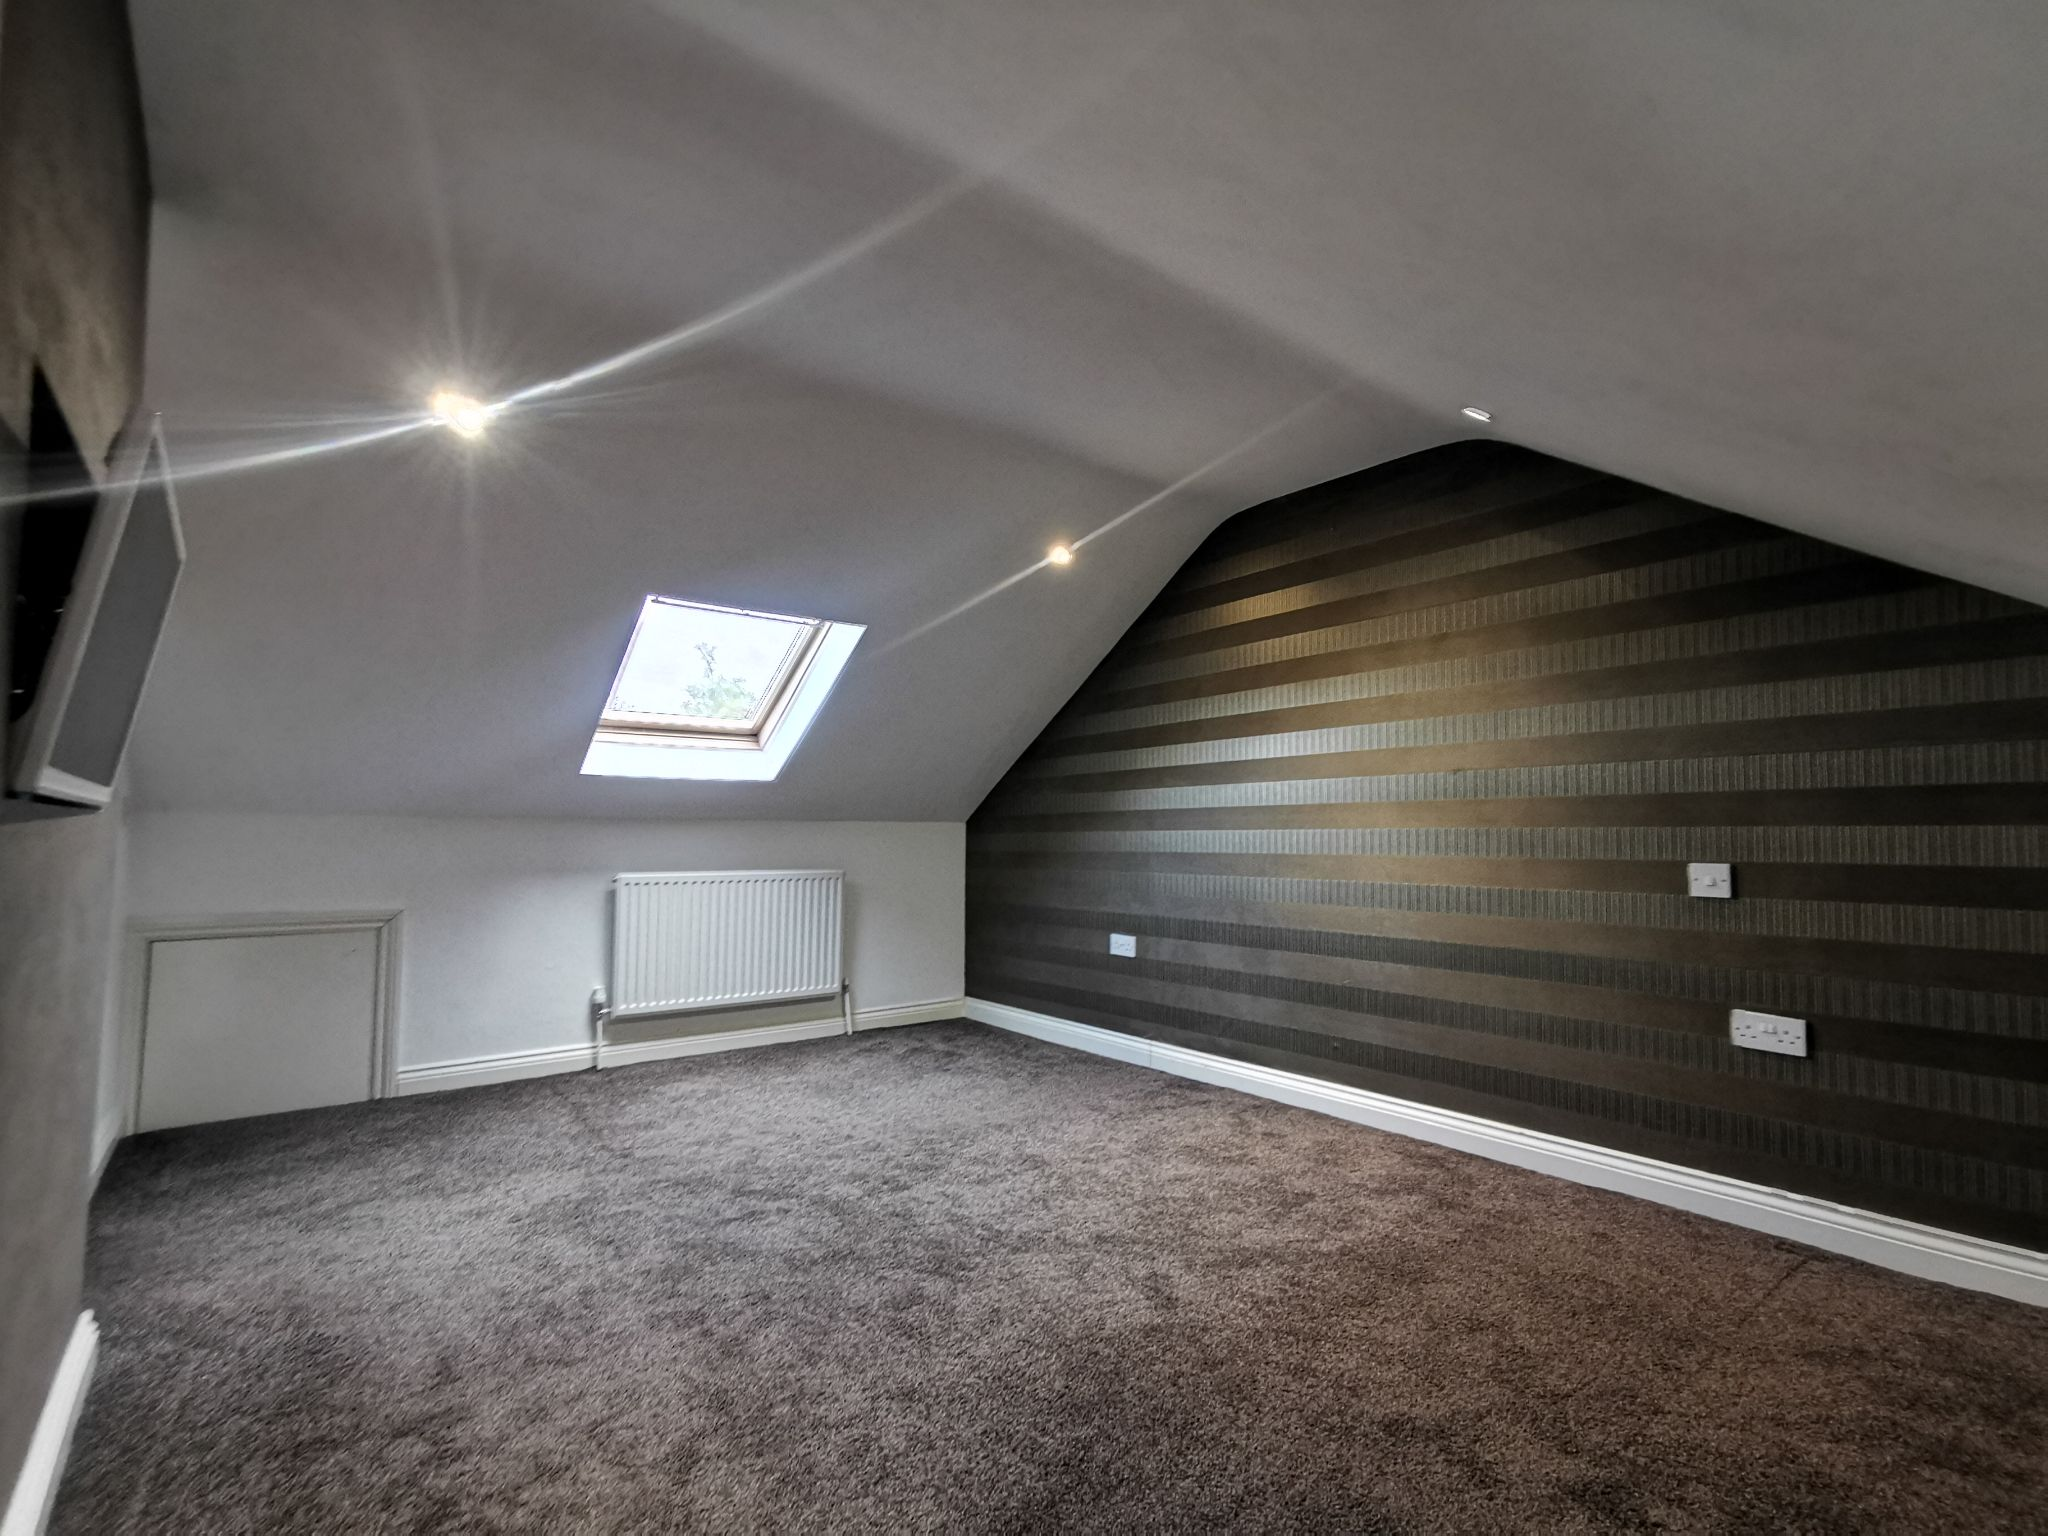 6 bedroom detached bungalow For Sale in Bradford - Photograph 26.